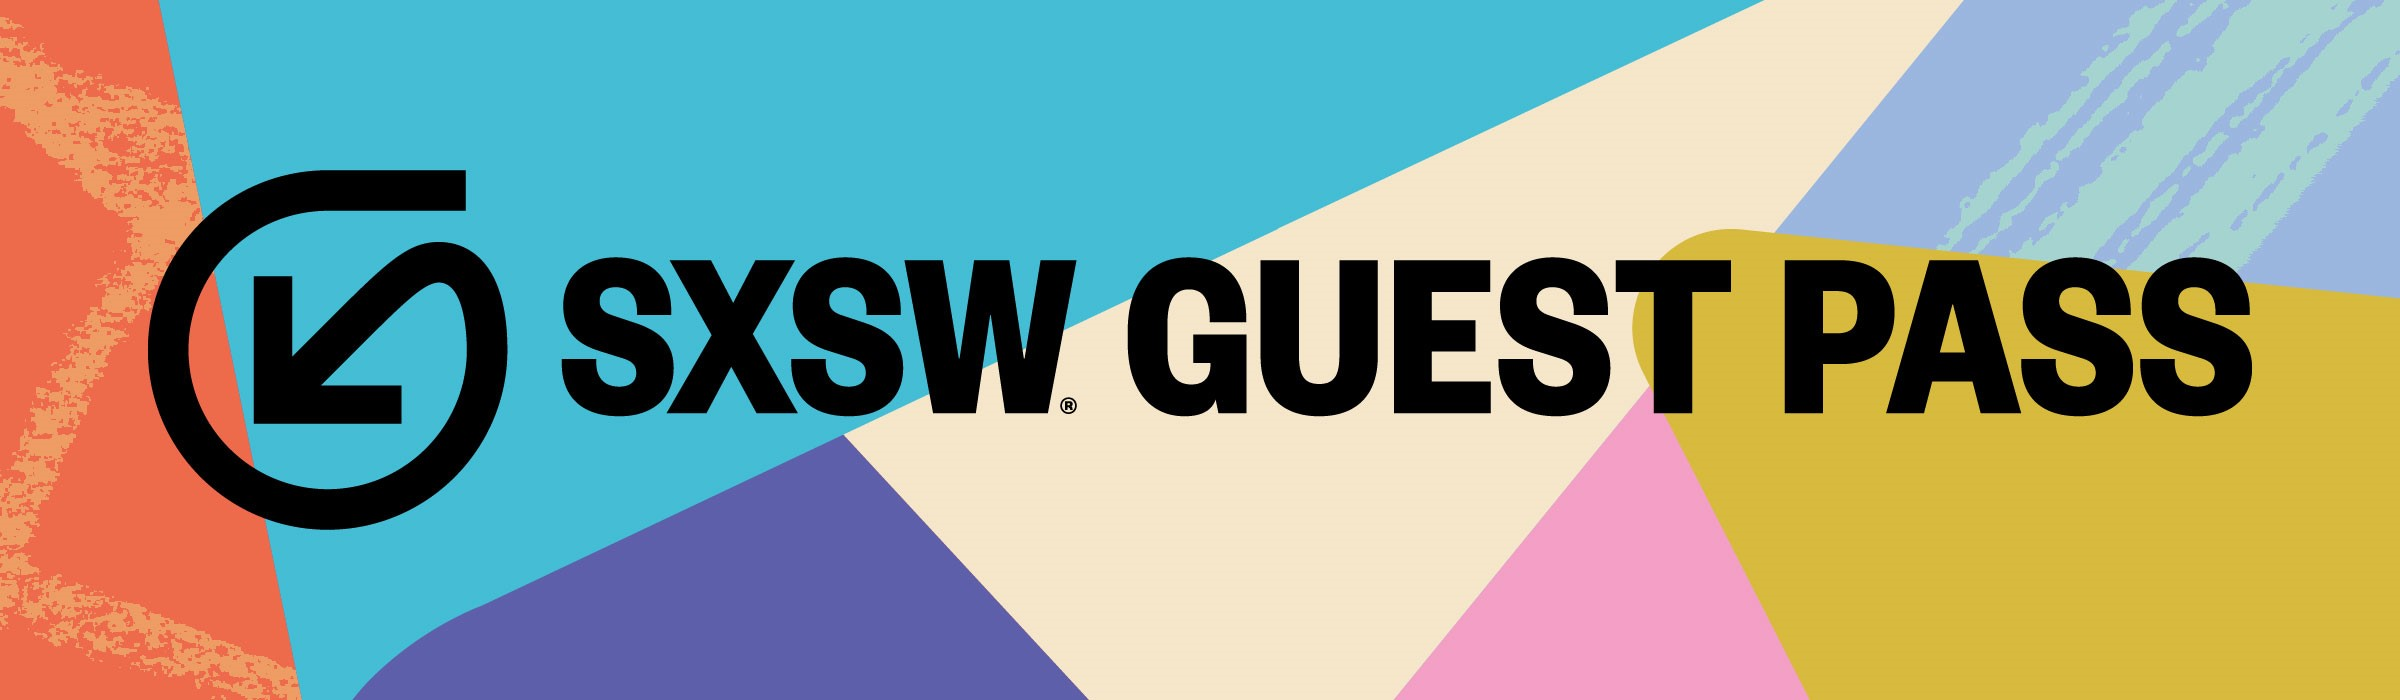 244b0bafc31b71 The day has finally come where SXSW 2018 Guest Pass registration is open!  The Guest Pass is your free credential to many SXSWeek® events.